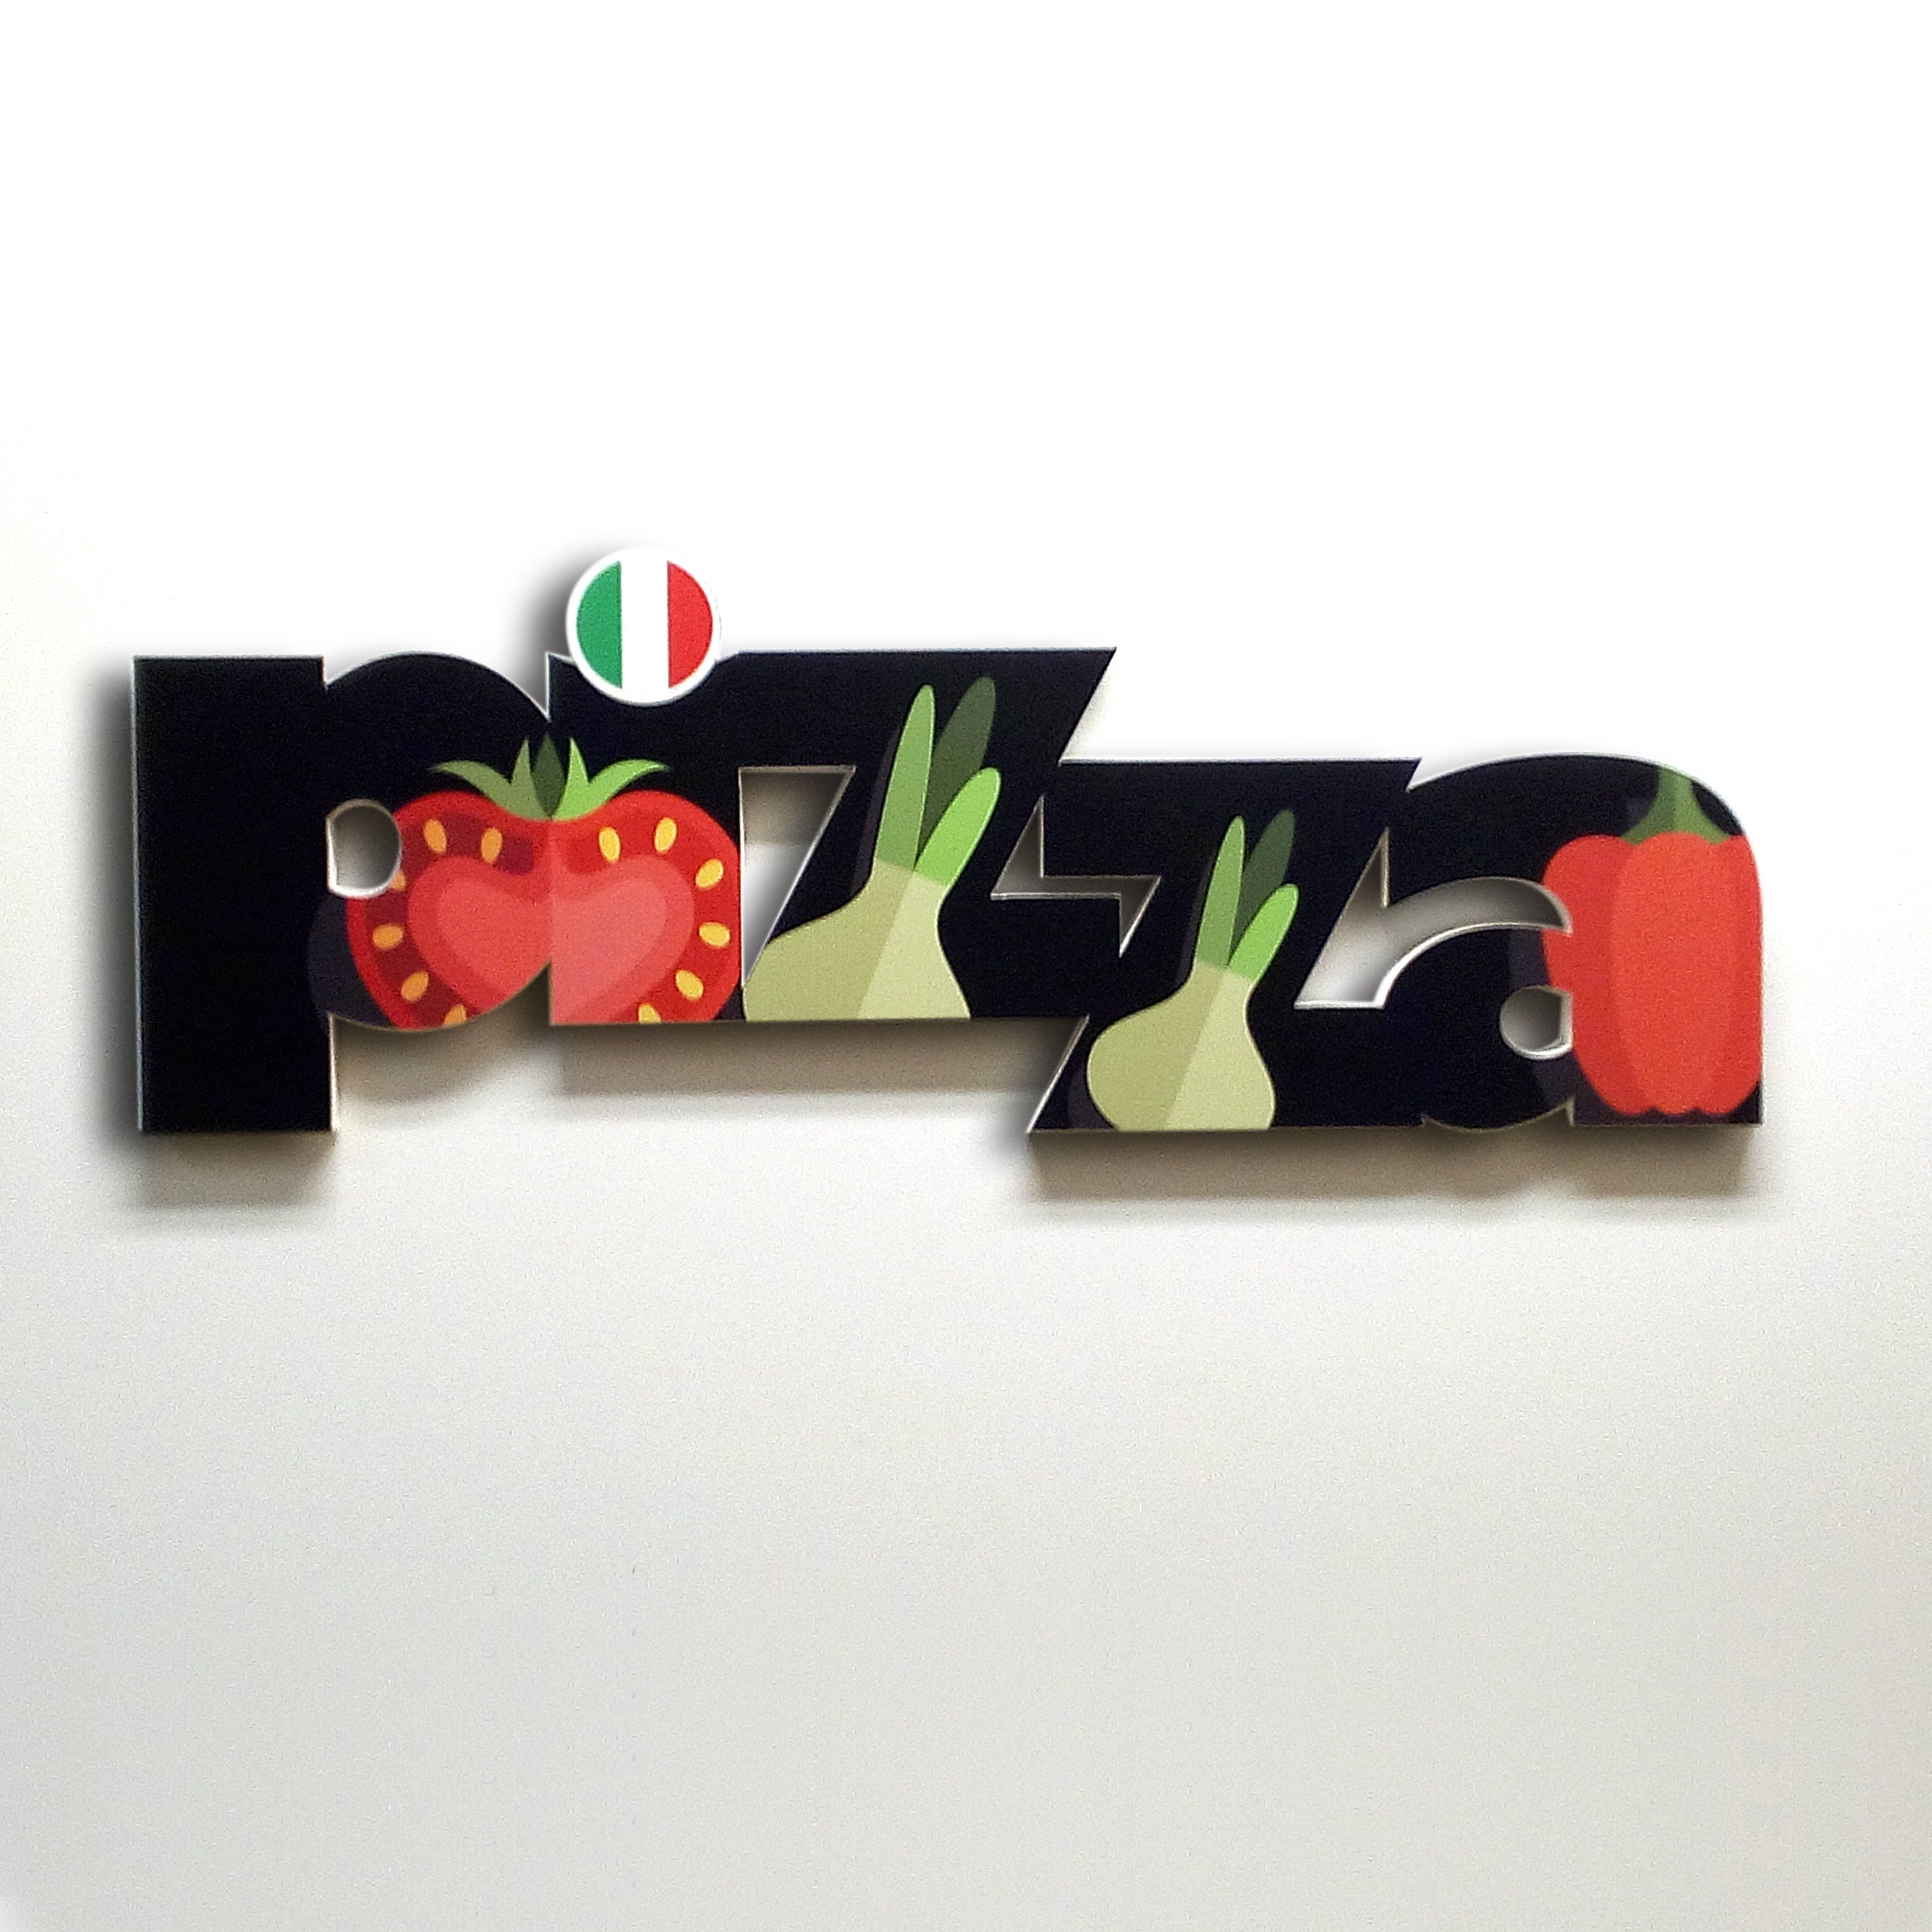 Pizza - Pizza sign, shop sign, wall signs, food signs, signs kitchen ...